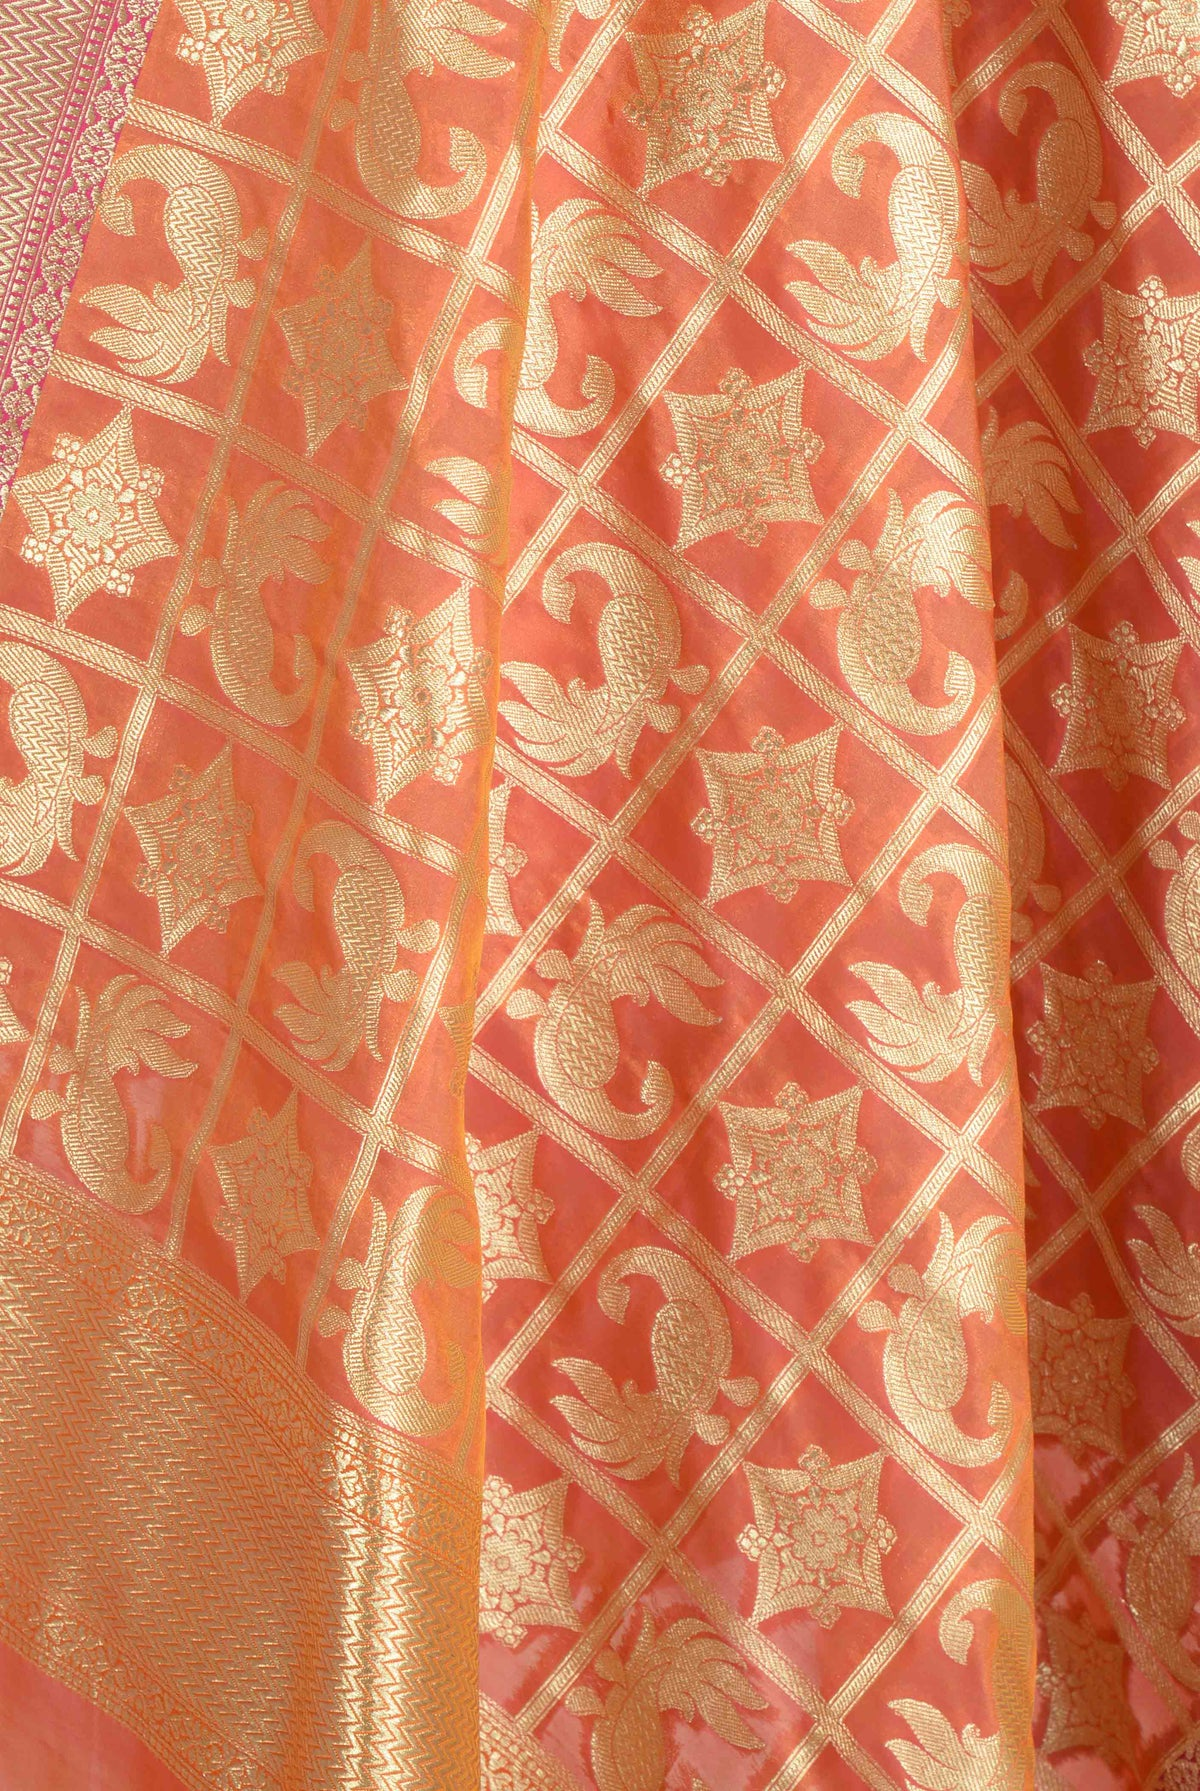 Orange Banarasi Dupatta with peacock and geometric motifs (2) Closeup